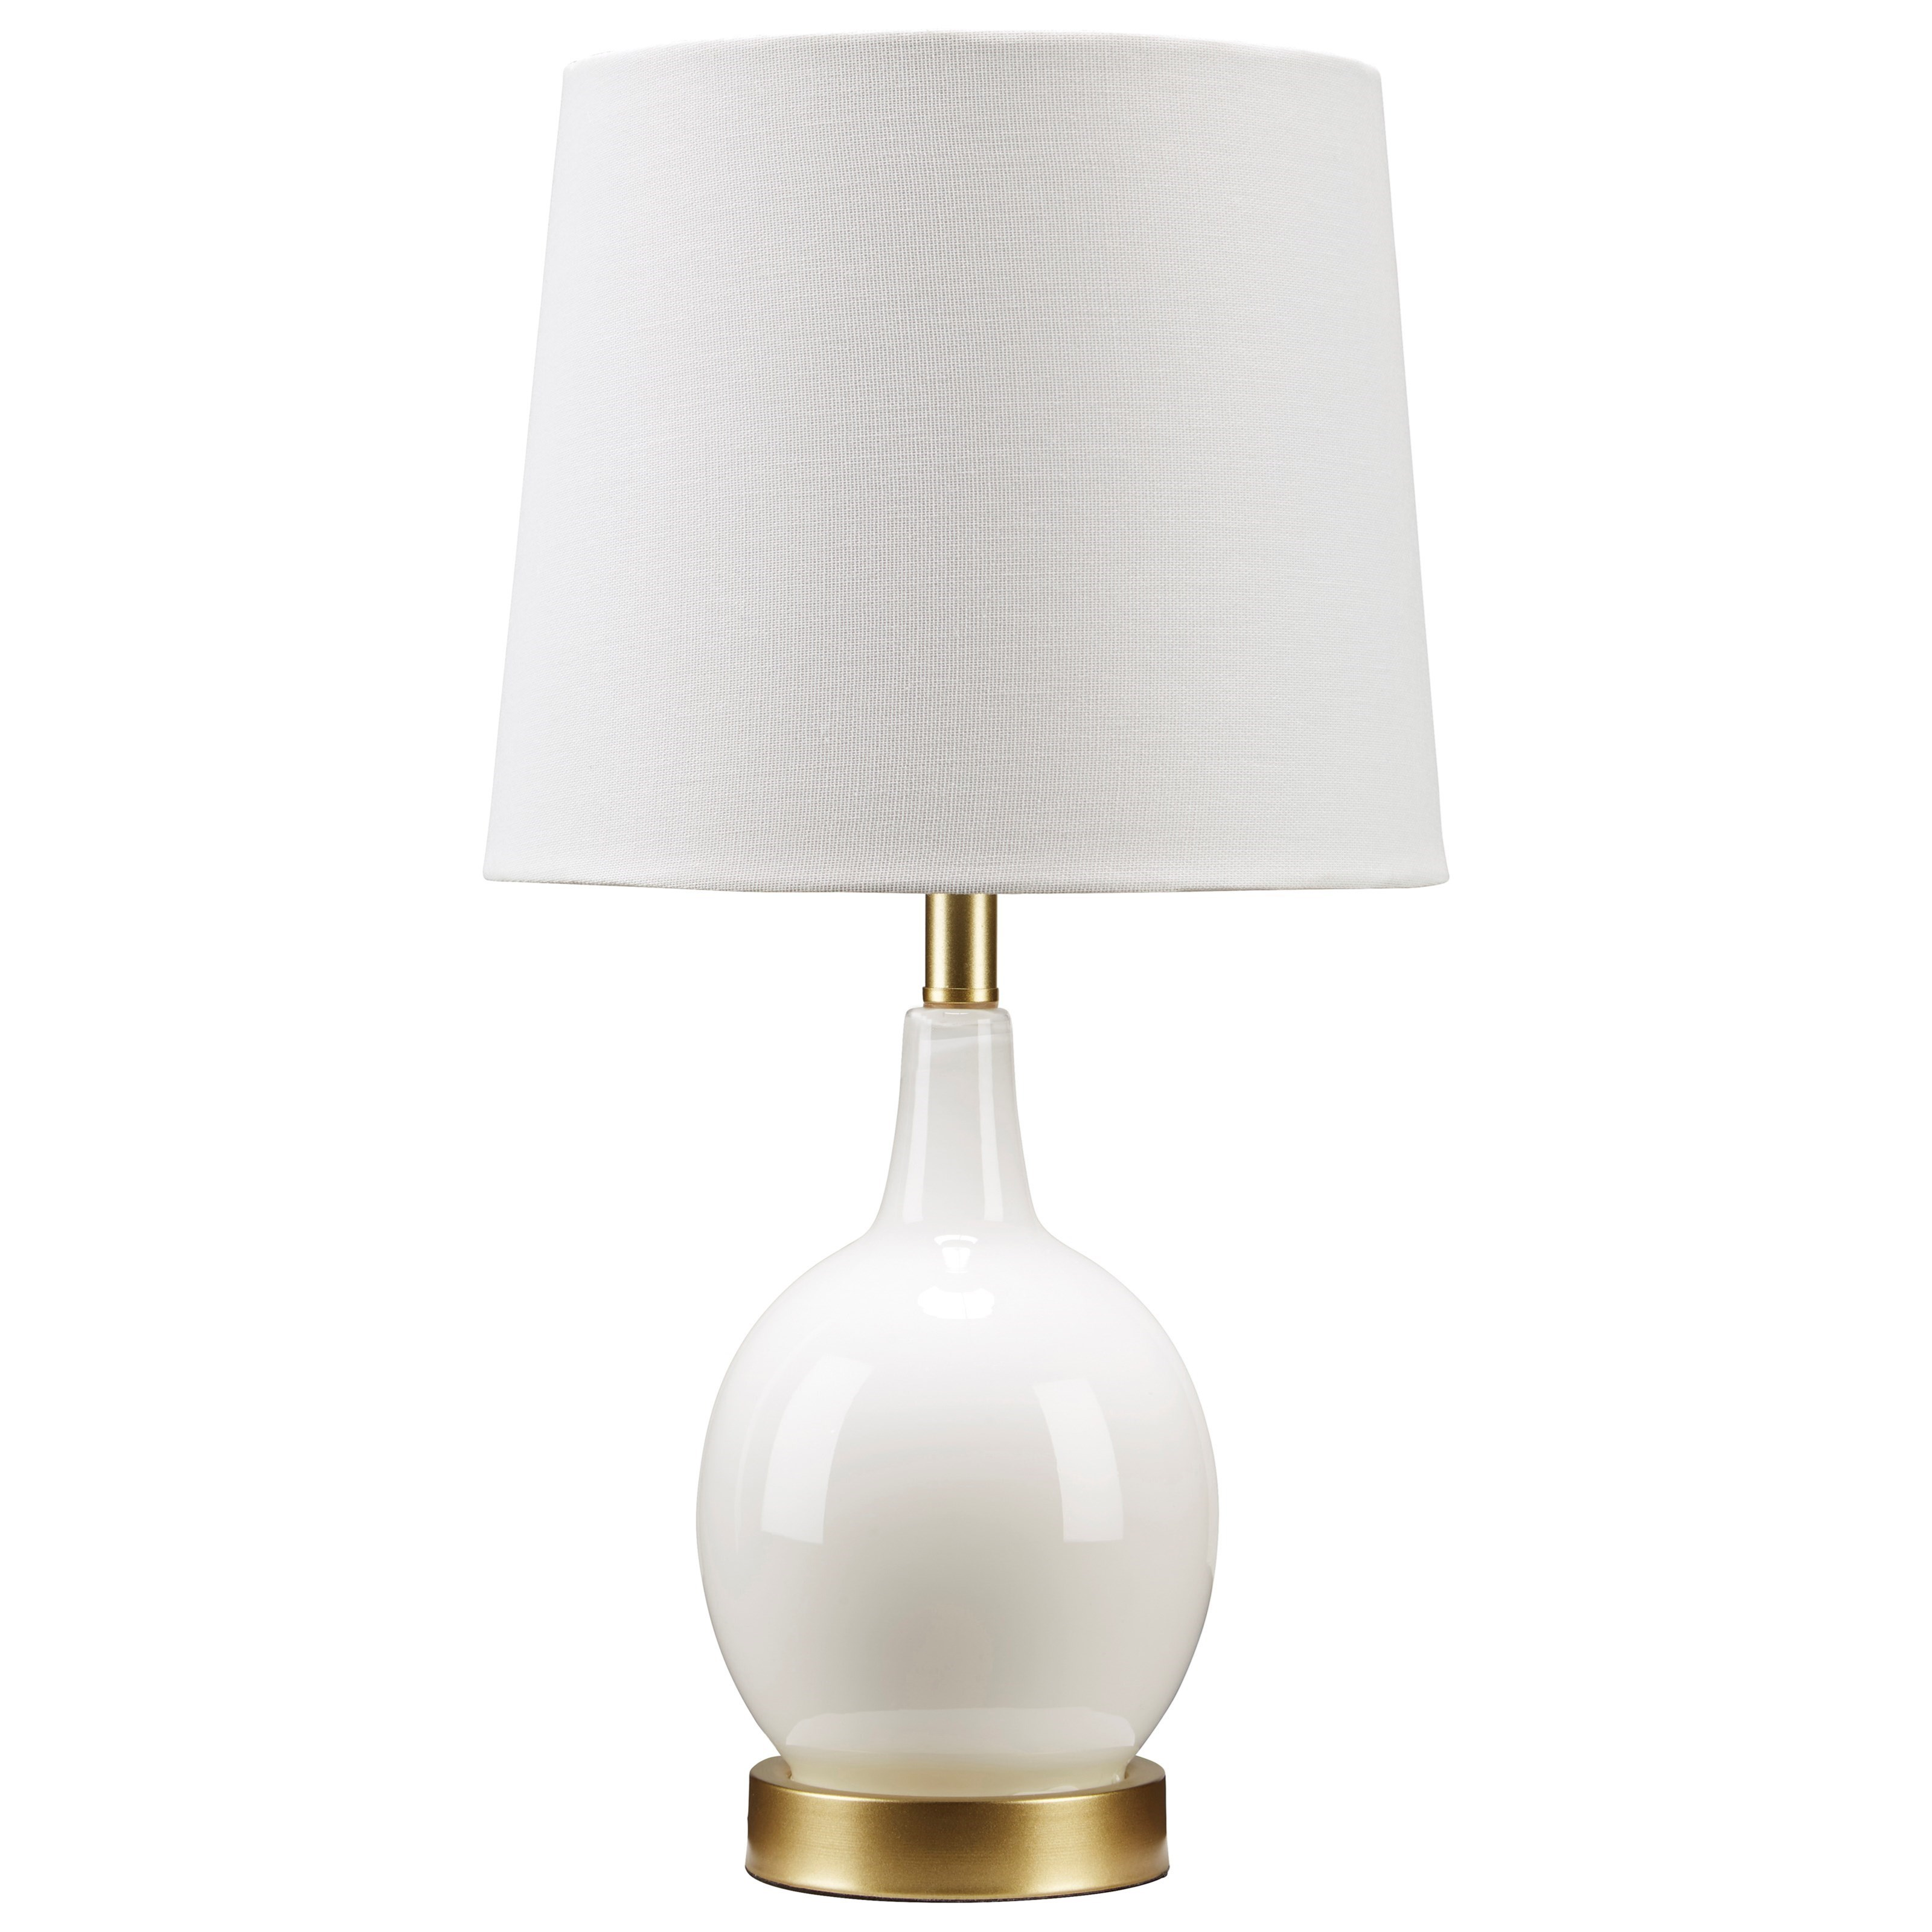 Lamps - Contemporary Arlomore White Glass Table Lamp by Signature Design by Ashley at Zak's Home Outlet